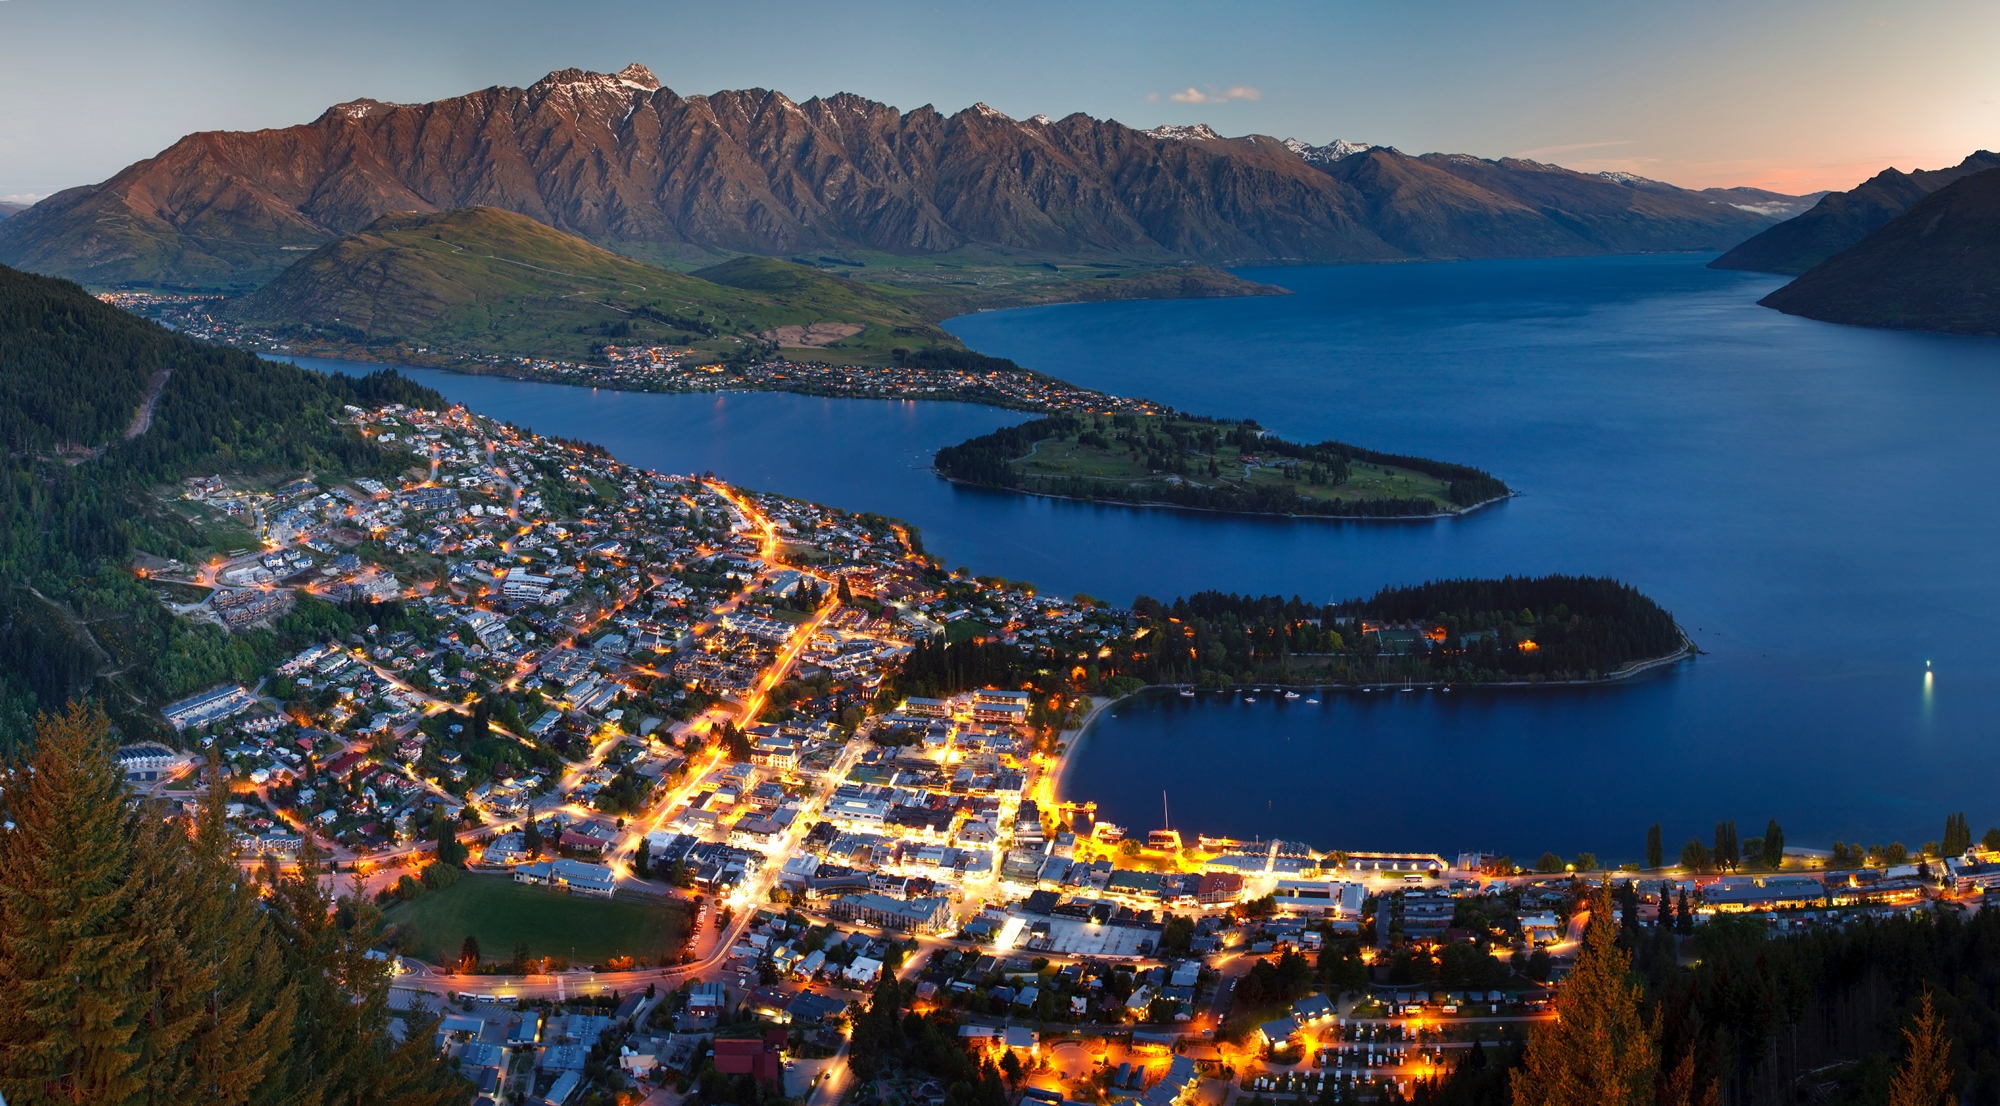 Queenstown is the adventure capital of New Zealand